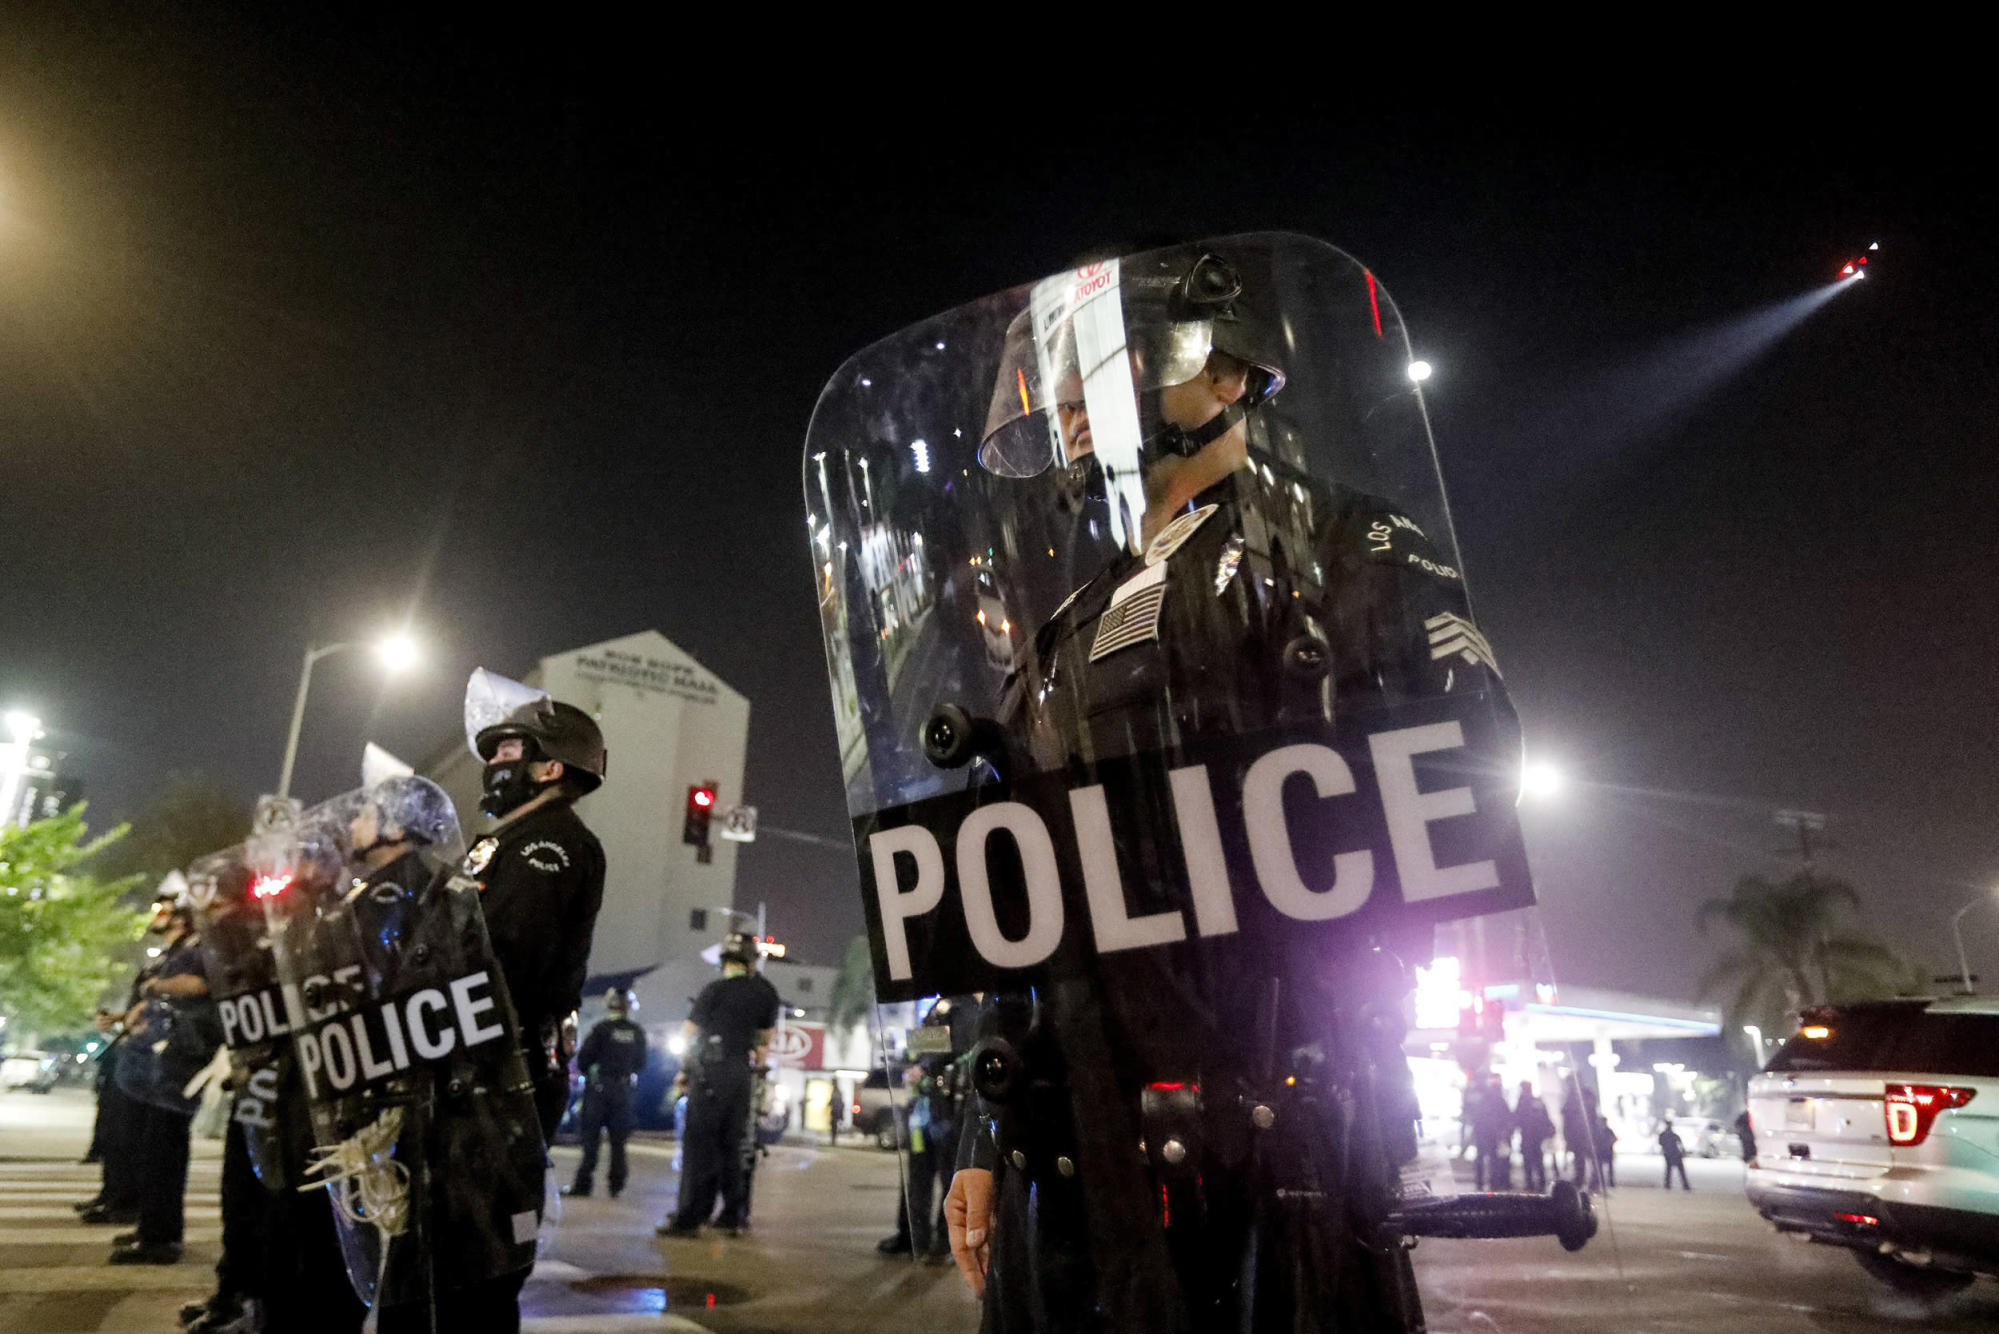 Voters around the U.S. approve local police reform measures